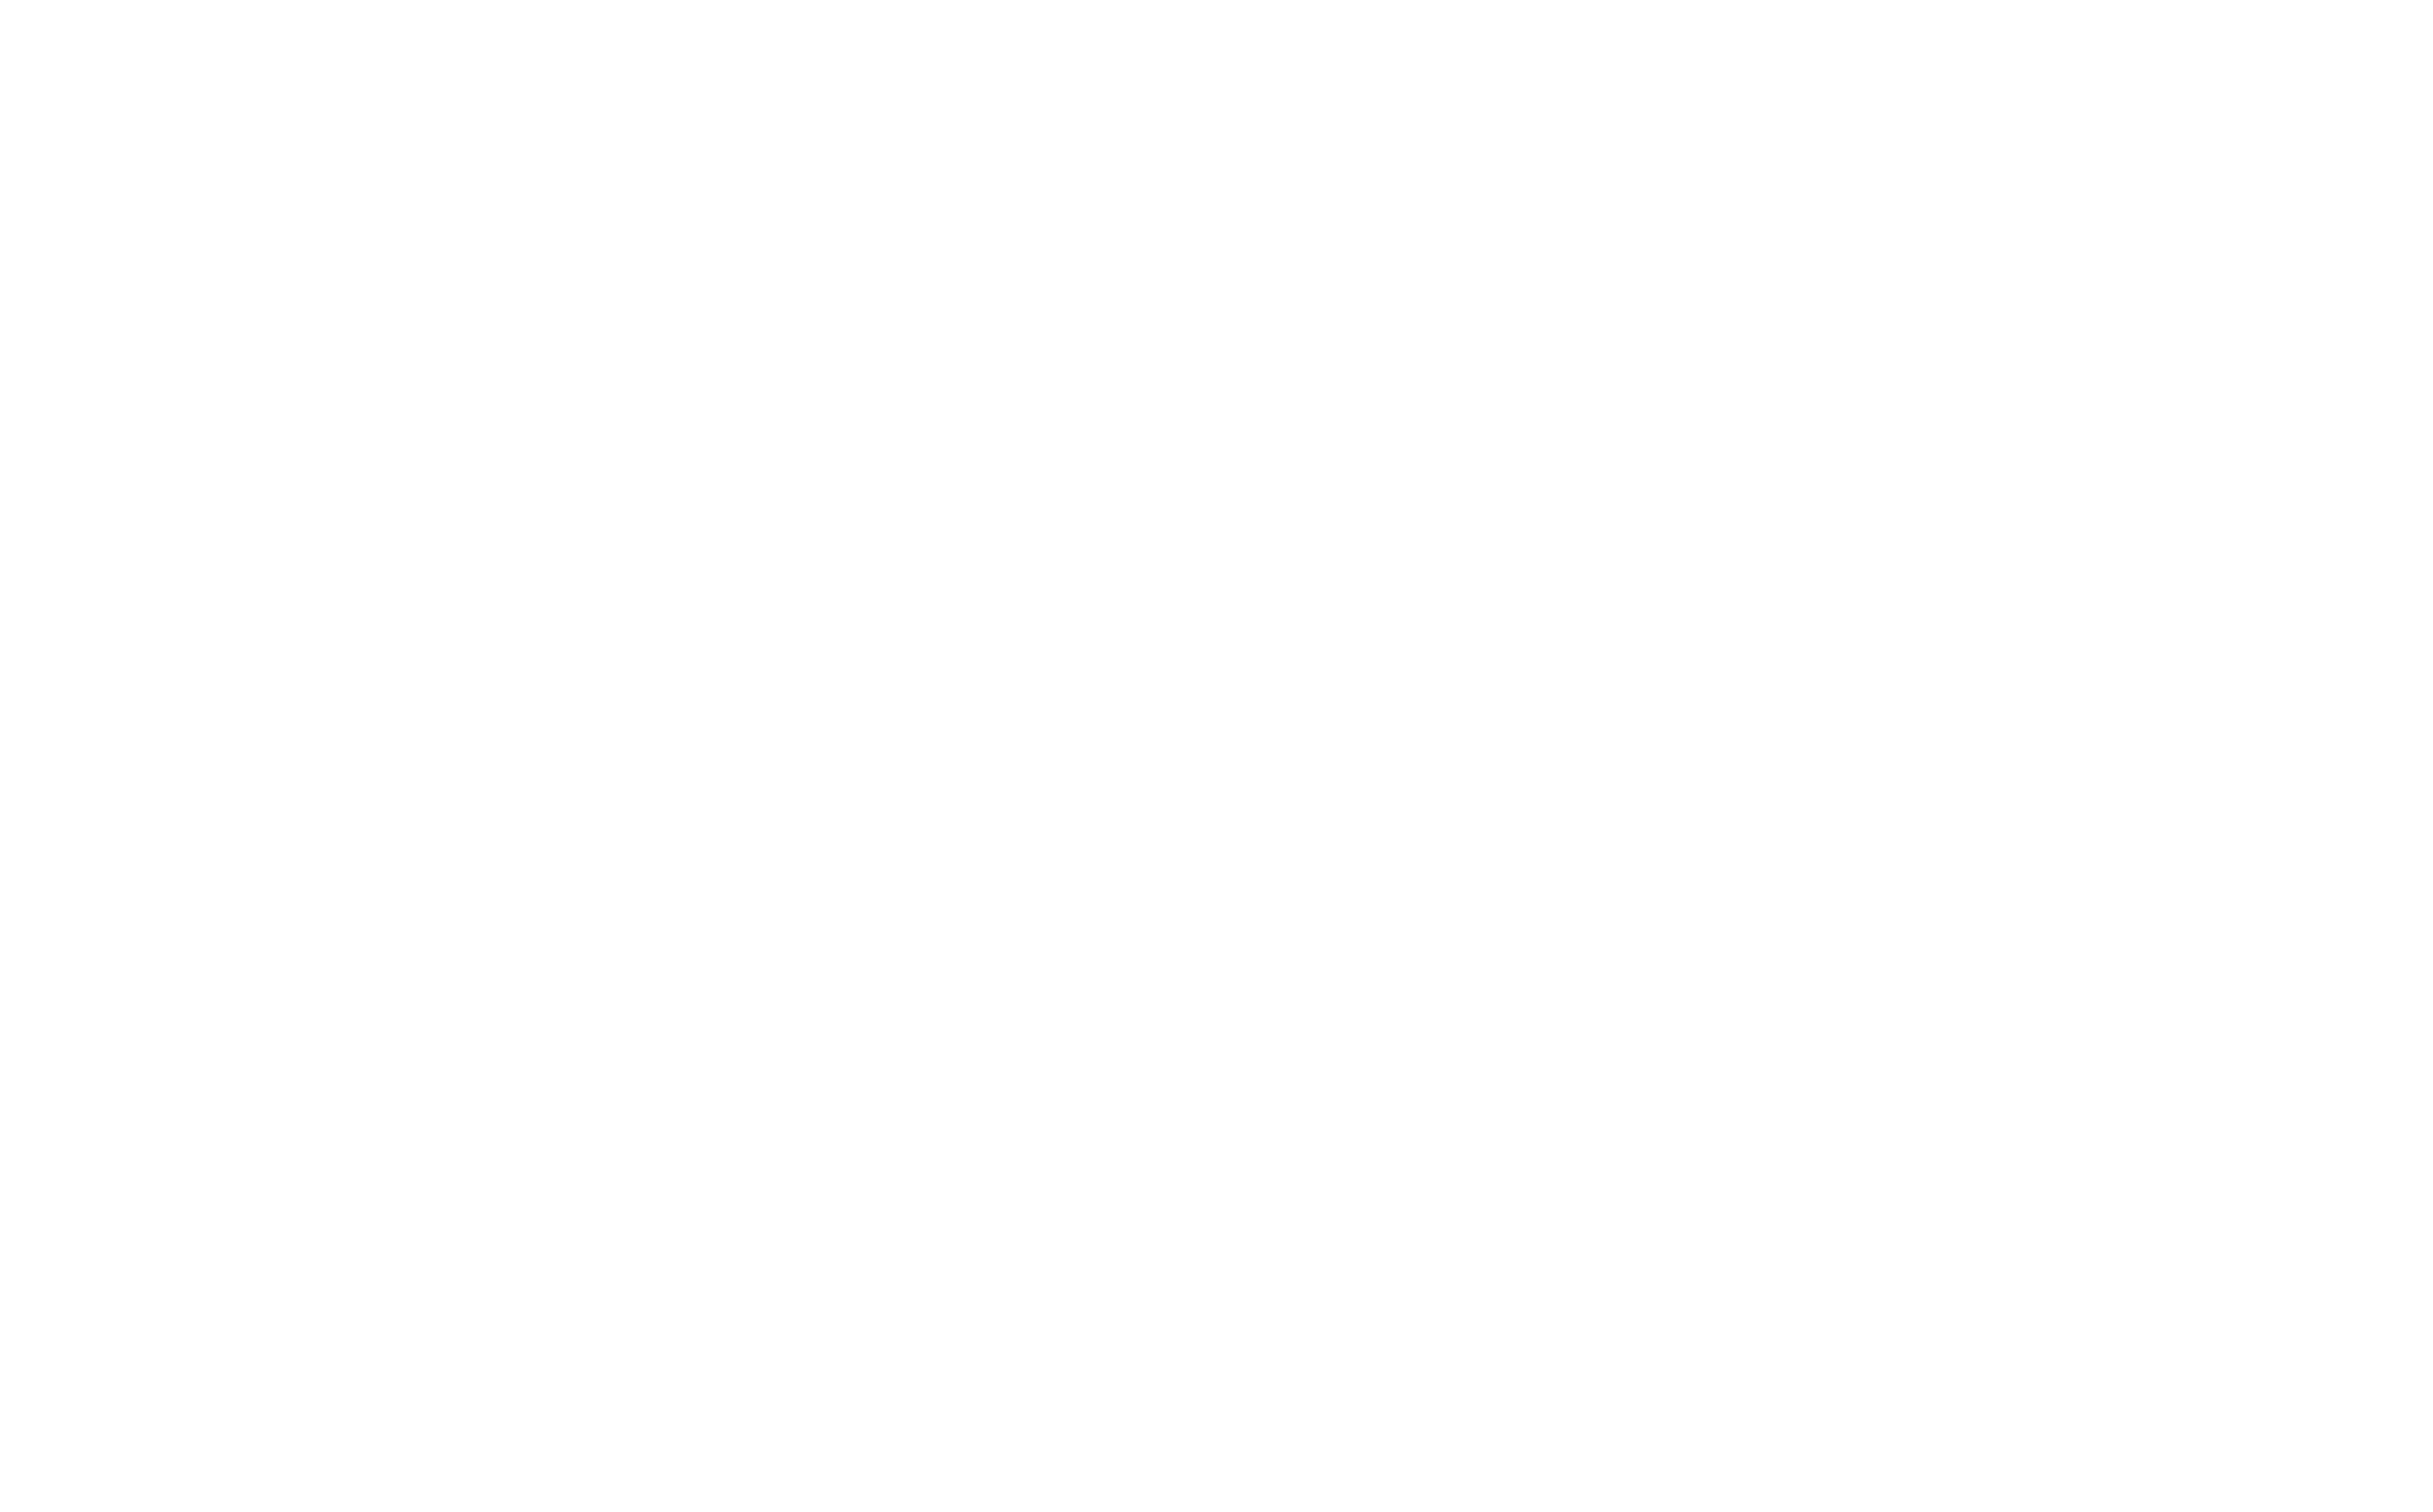 AAA-Tutoring-Africa-providing-online-tutoring-and-education-solutions